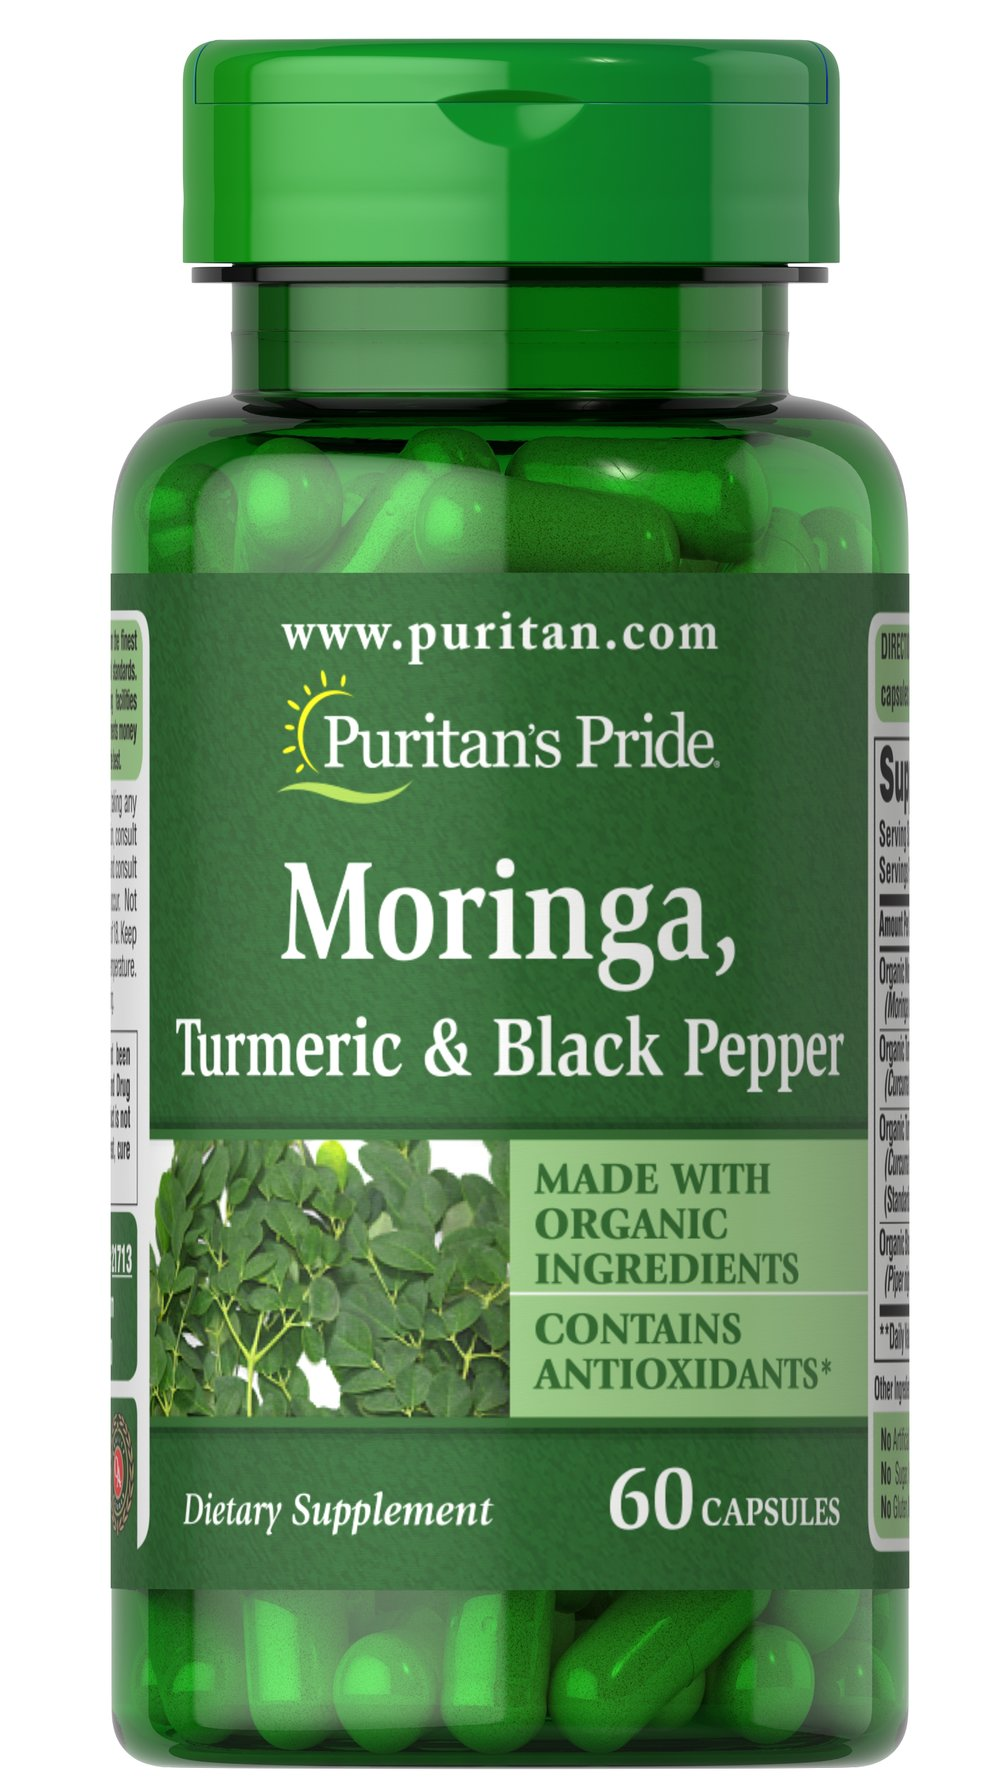 Moringa, Turmeric & Black Pepper Thumbnail Alternate Bottle View